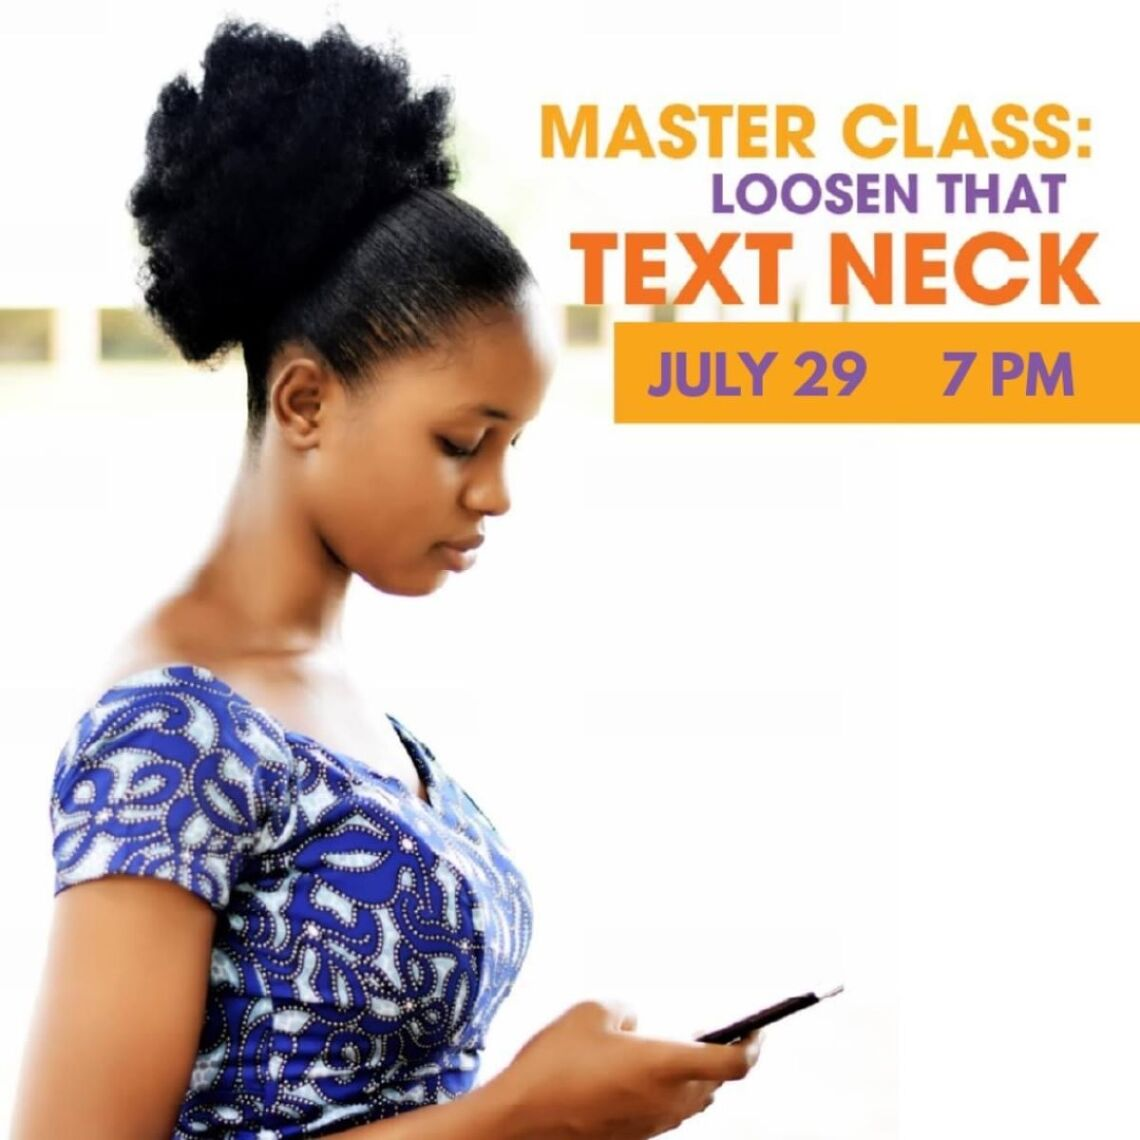 , you're invited to July's Master Class: Loosen That Text Neck Image